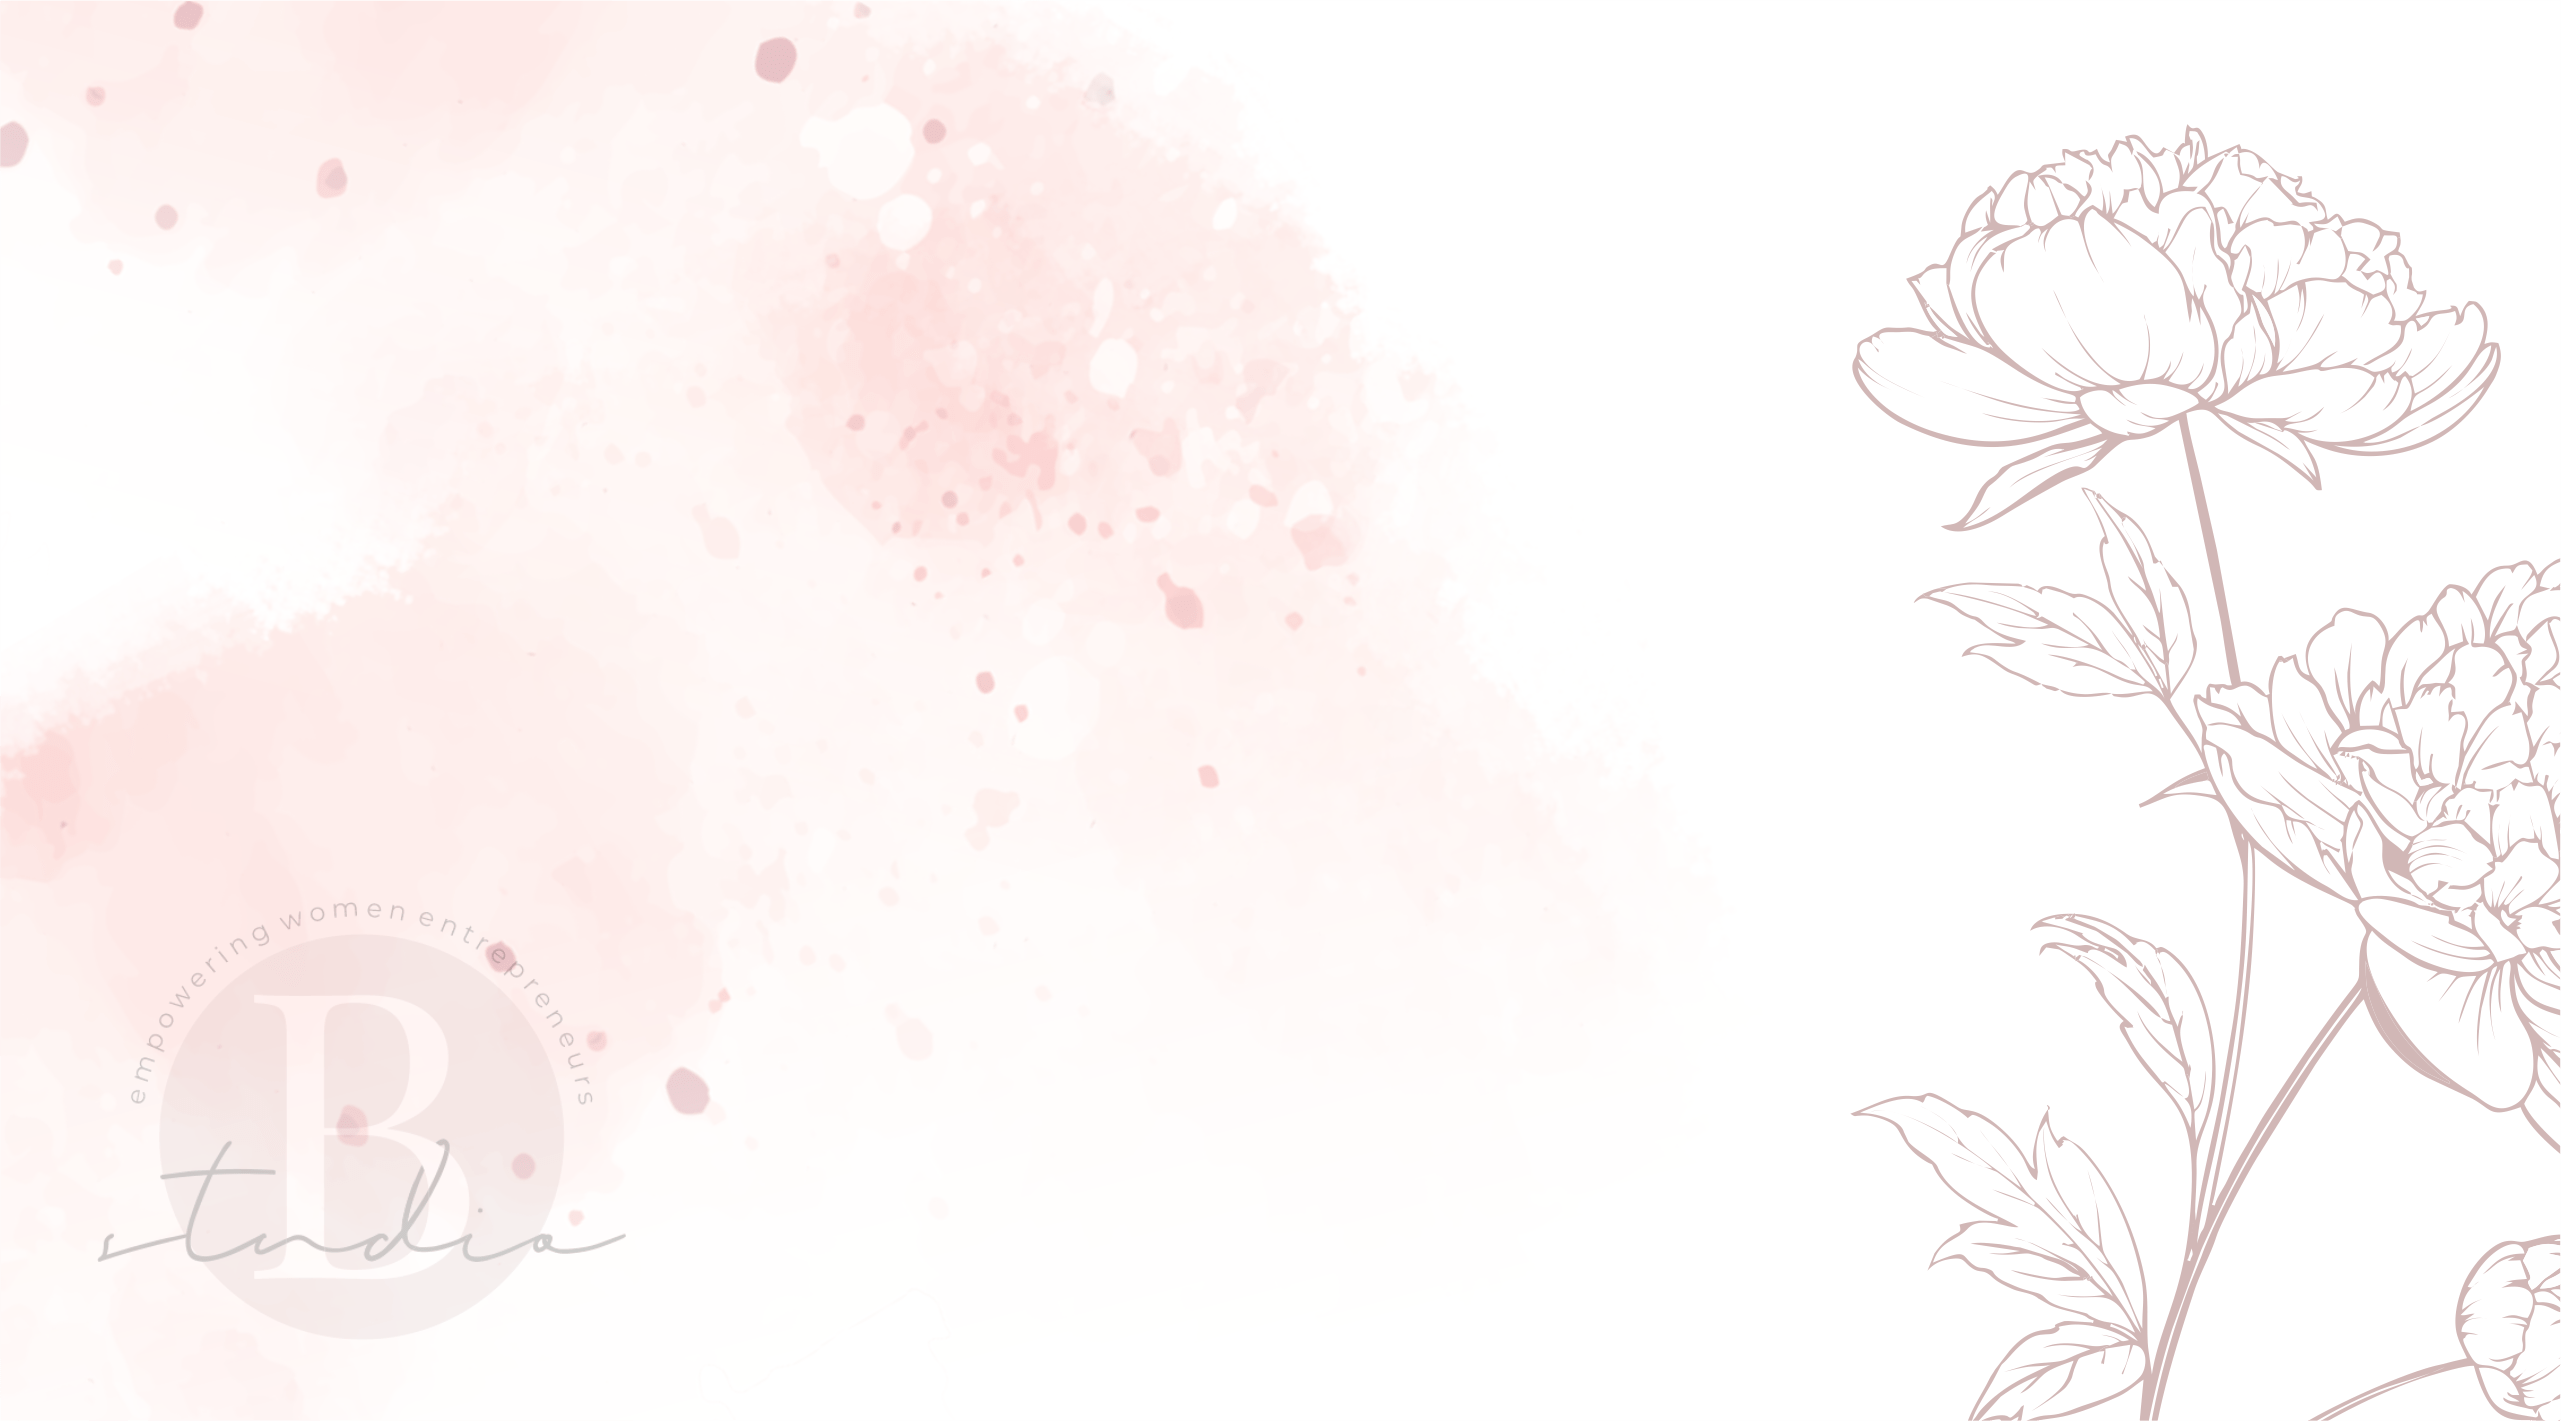 blossom-web-studio-new-banner2020